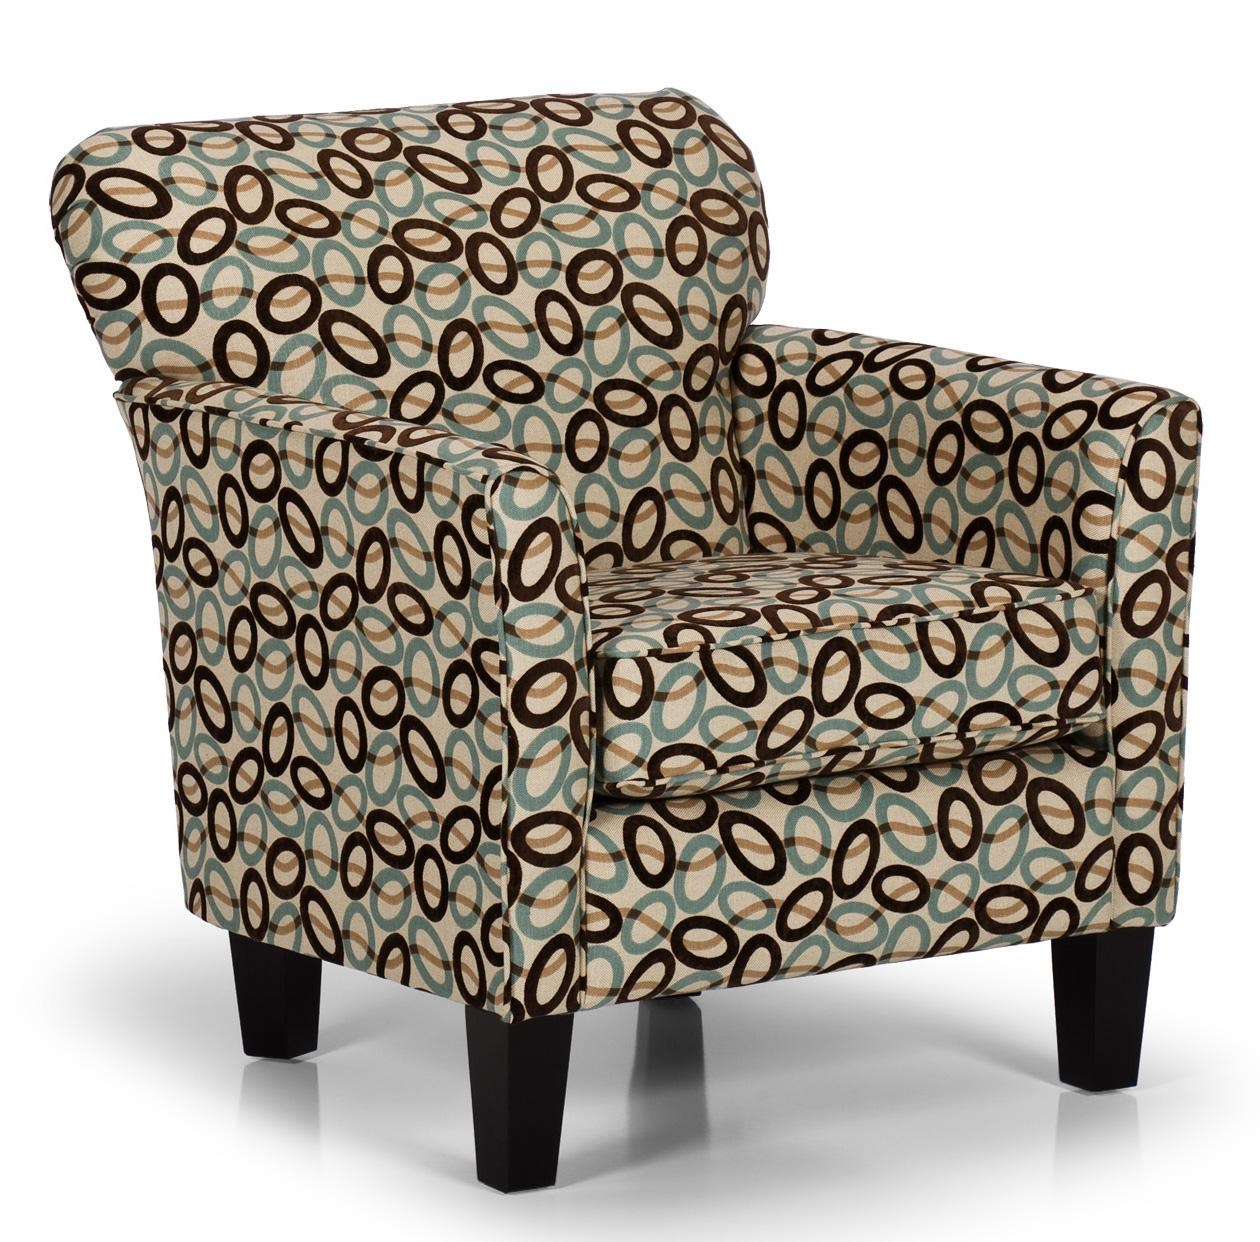 29 also 10132912 together with Home Made Chairs moreover HM Richards Furniture further 118641771408246135. on cindy crawford home sidney road accent chair